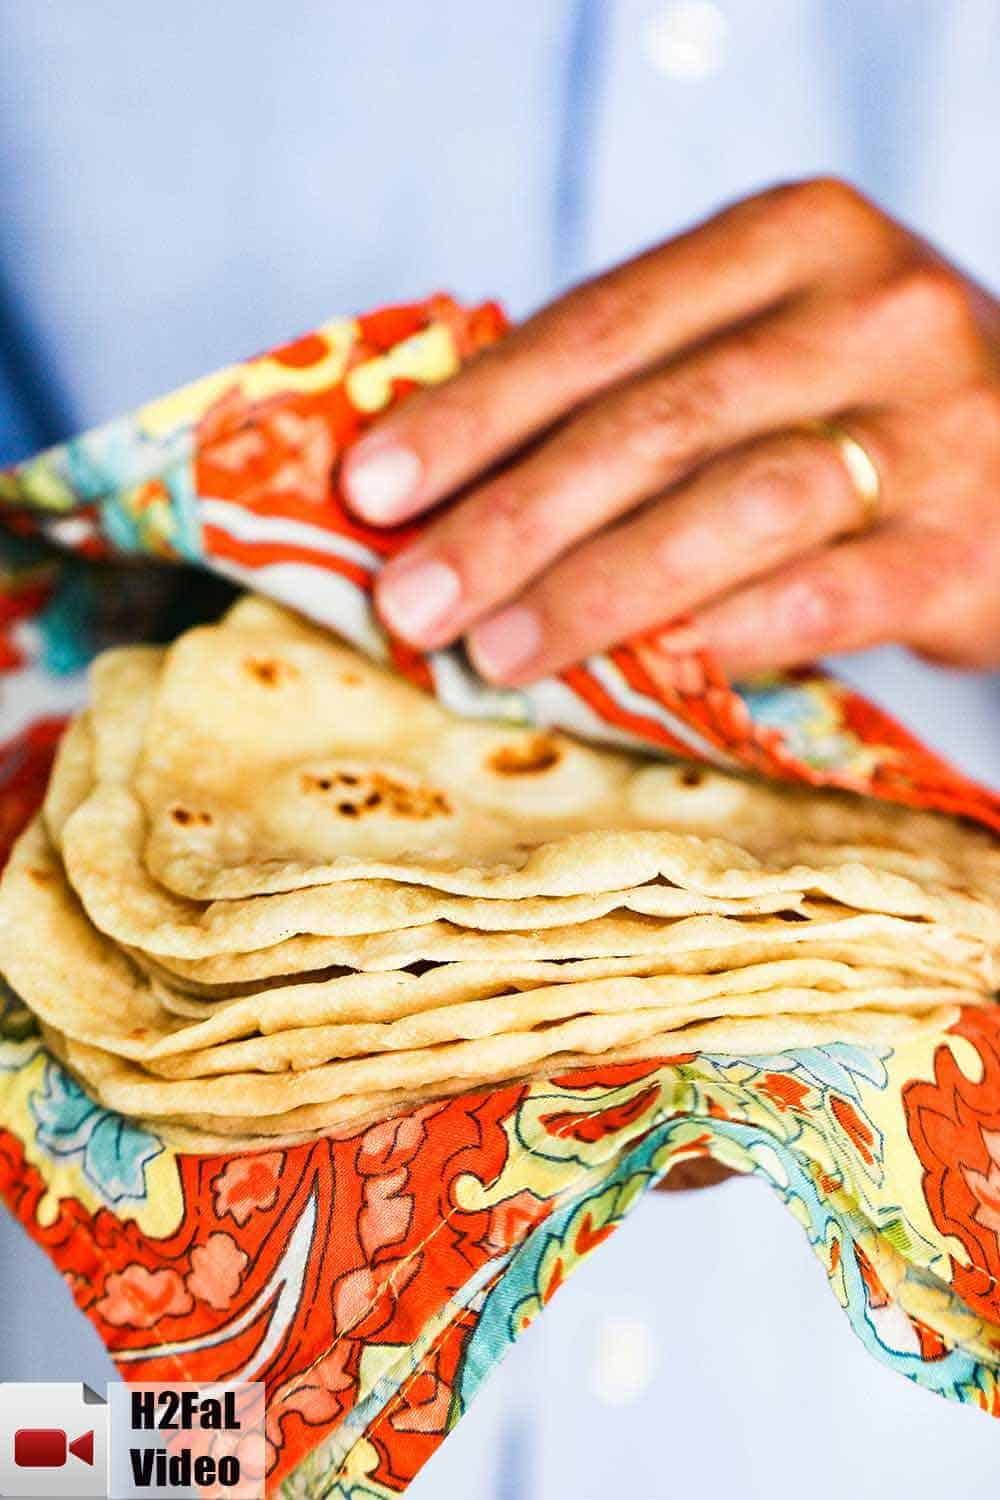 A stack of homemade flour tortillas being held by two hands in a Mexican cloth.